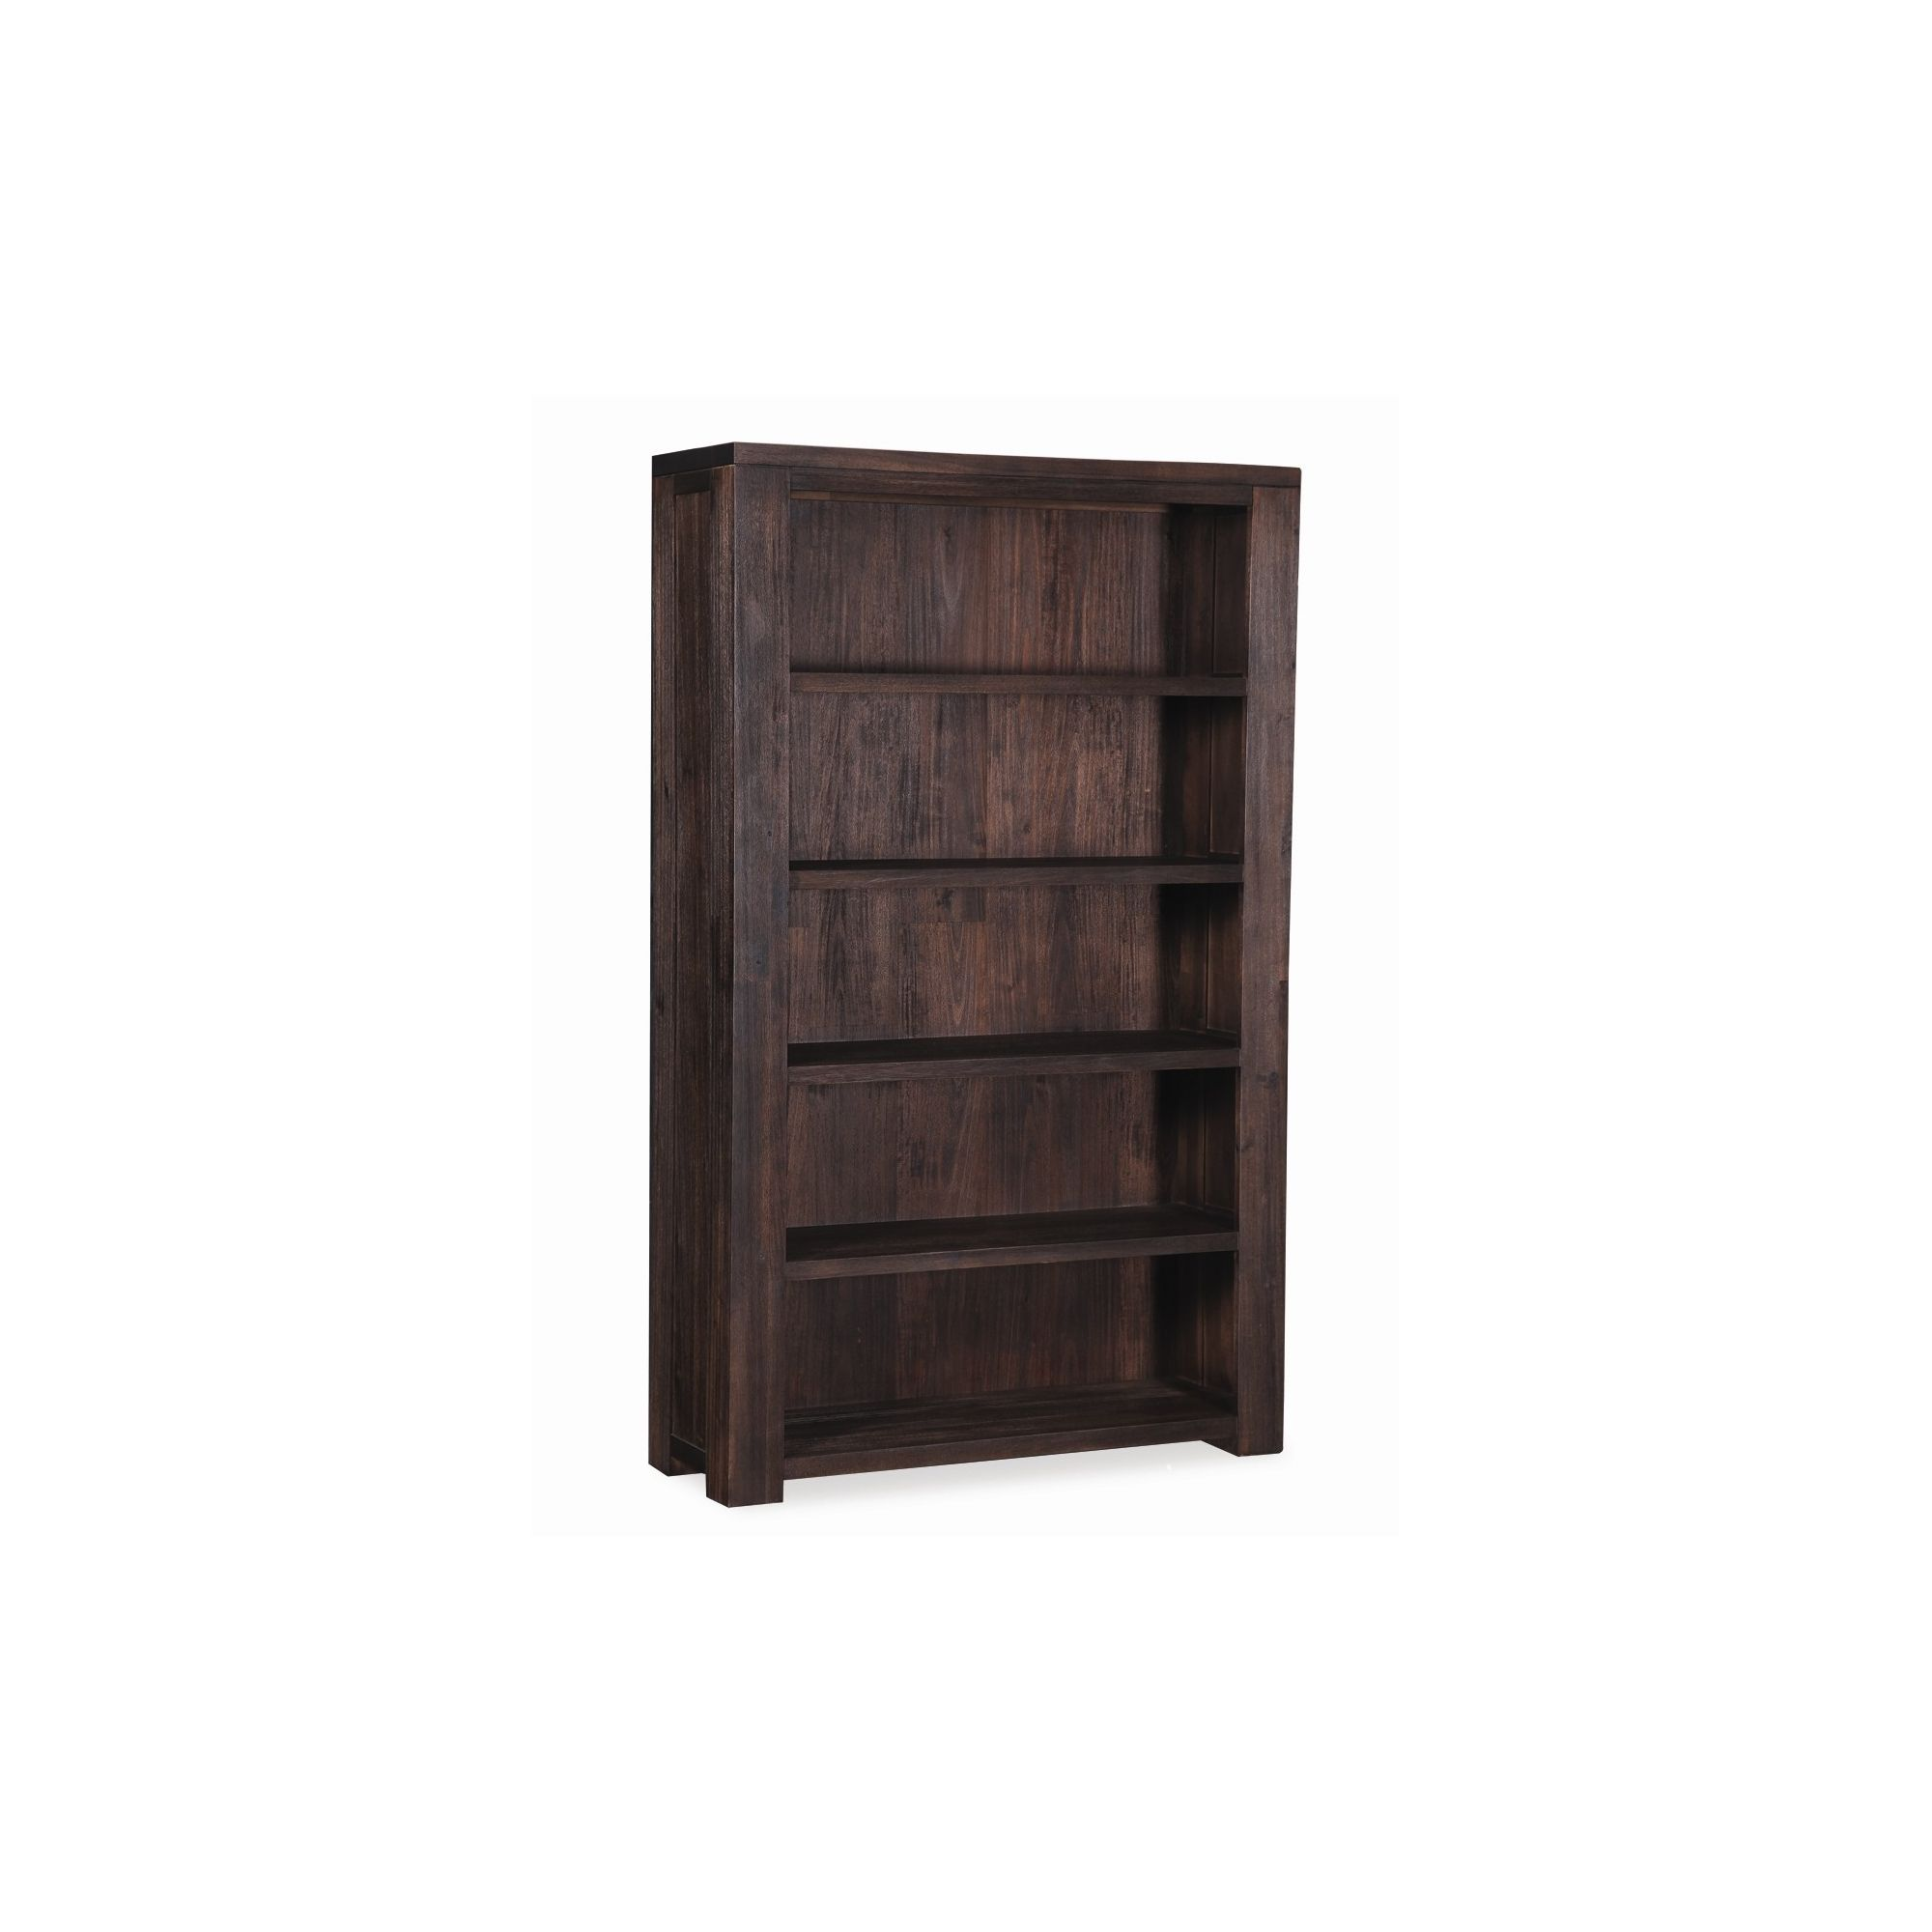 Alterton Furniture Plantation Bookcase at Tesco Direct